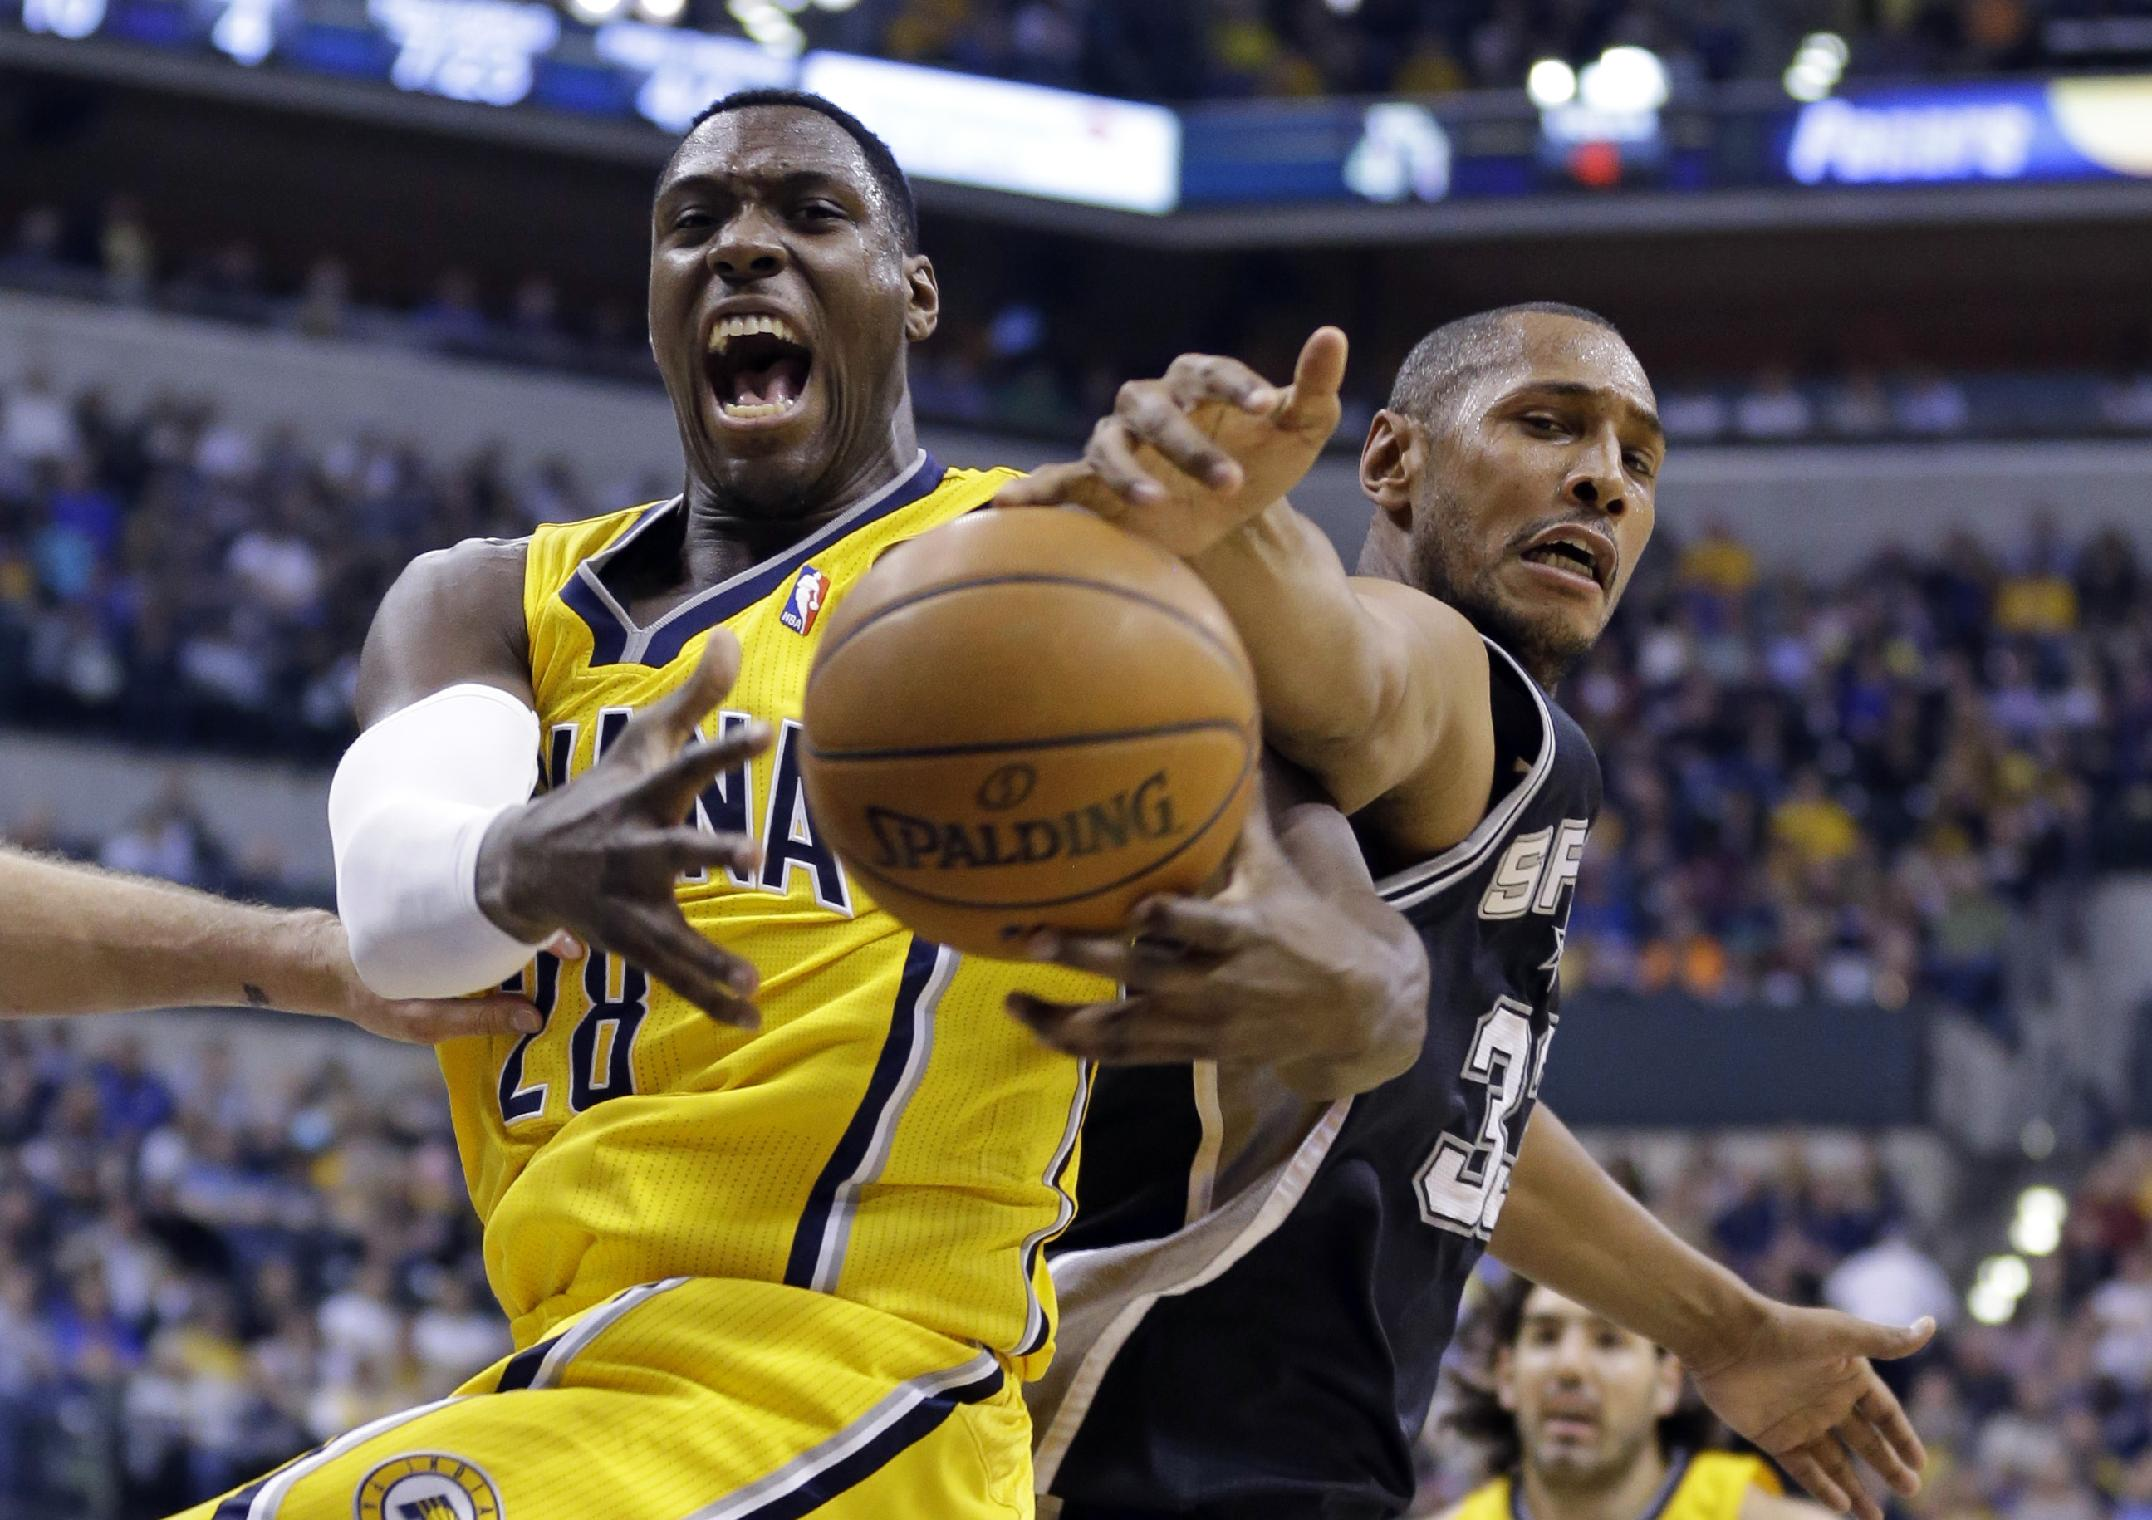 Indiana Pacers center Ian Mahinmi, left, and San Antonio Spurs forward Boris Diaw battle for rebound in the first half of an NBA basketball game in Indianapolis, Monday, March 31, 2014